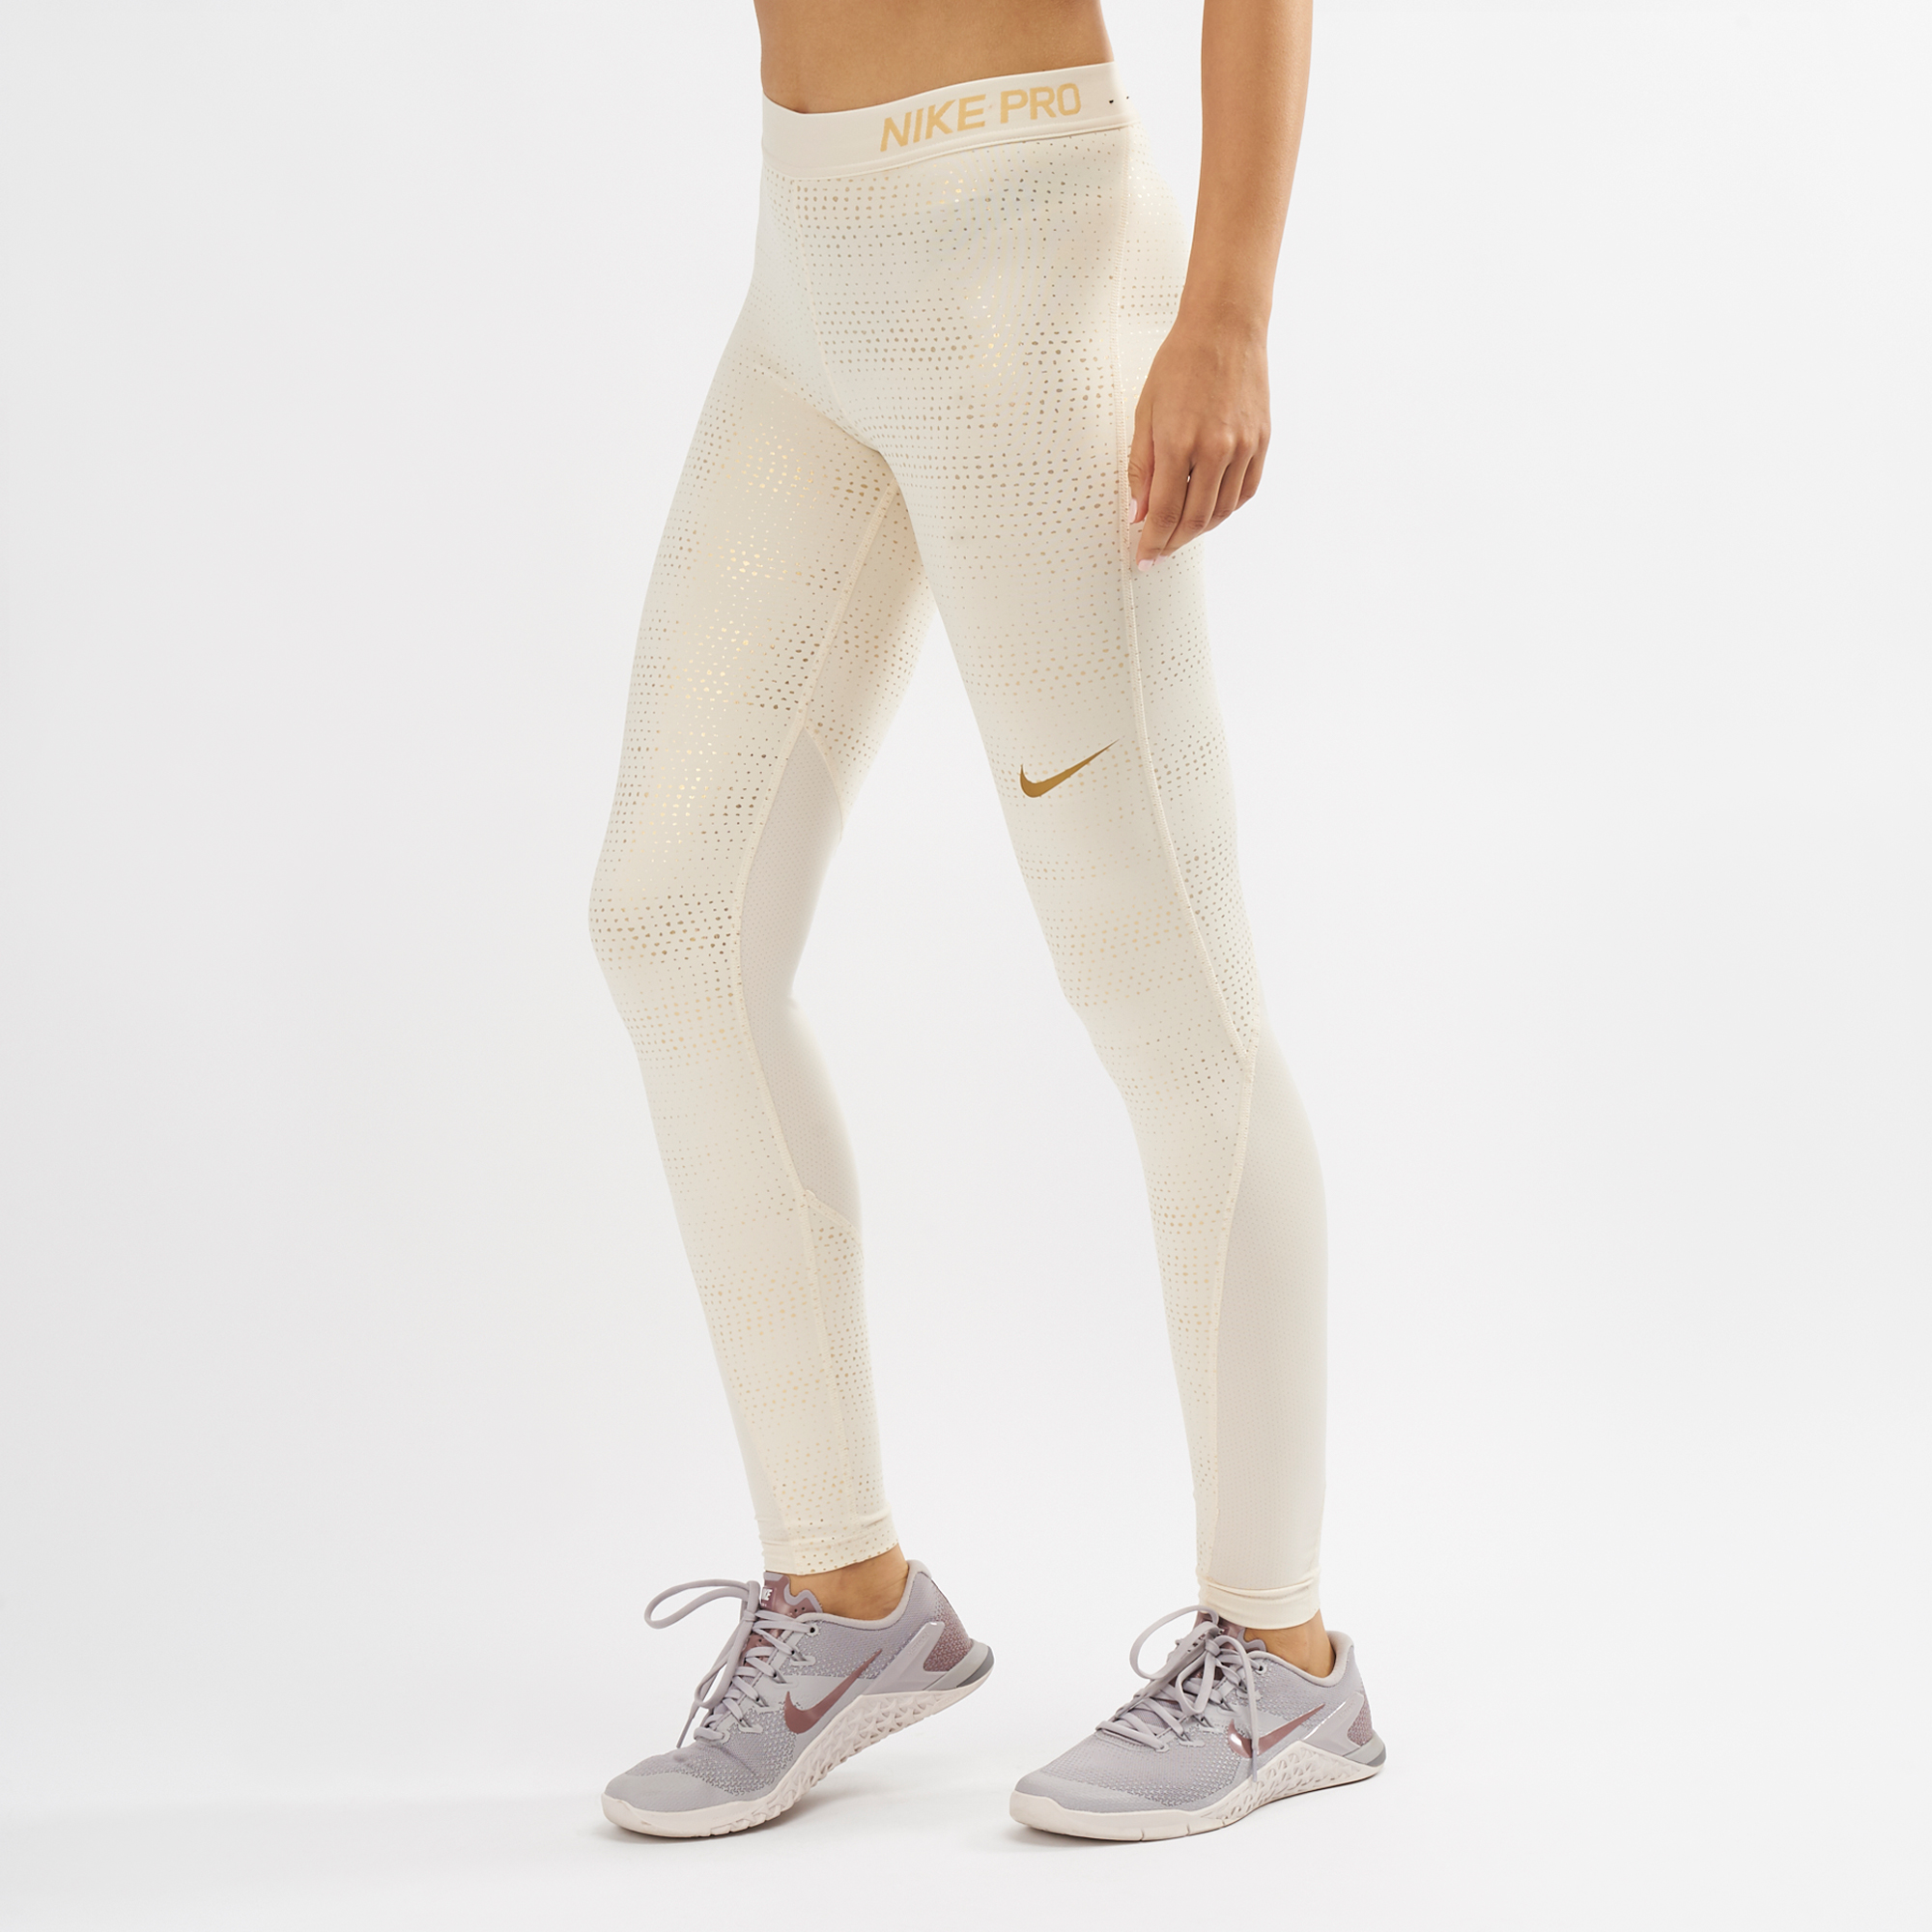 Nike Pro Metallic Dots Print Leggings | Full Length Leggings